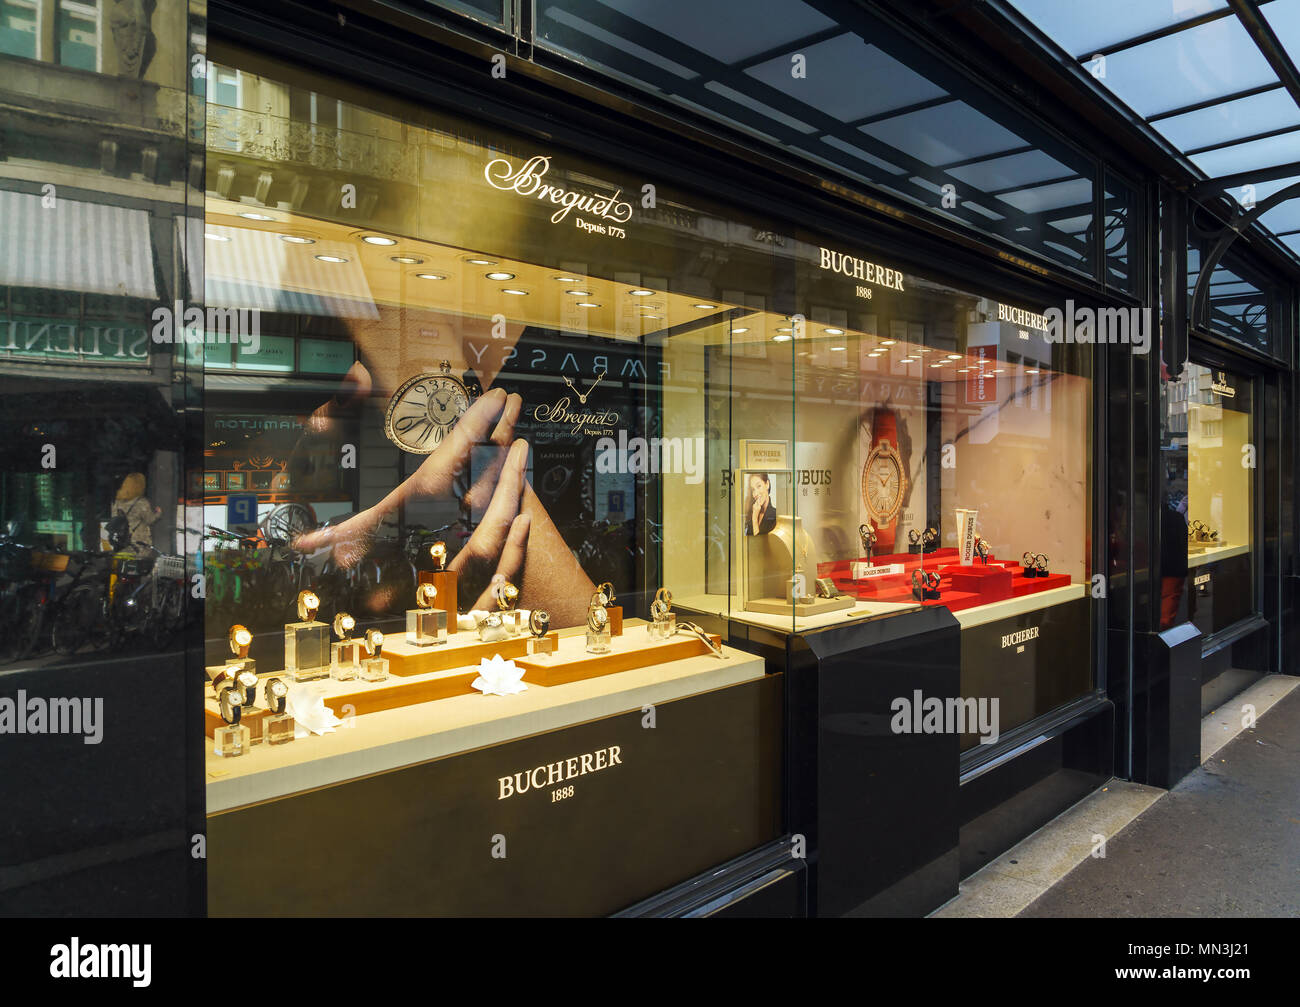 Lucerne, Switzerland - October 19, 2017: Showcases with wristwatches of expensive watch brands Breguet and Bucherer - Stock Image